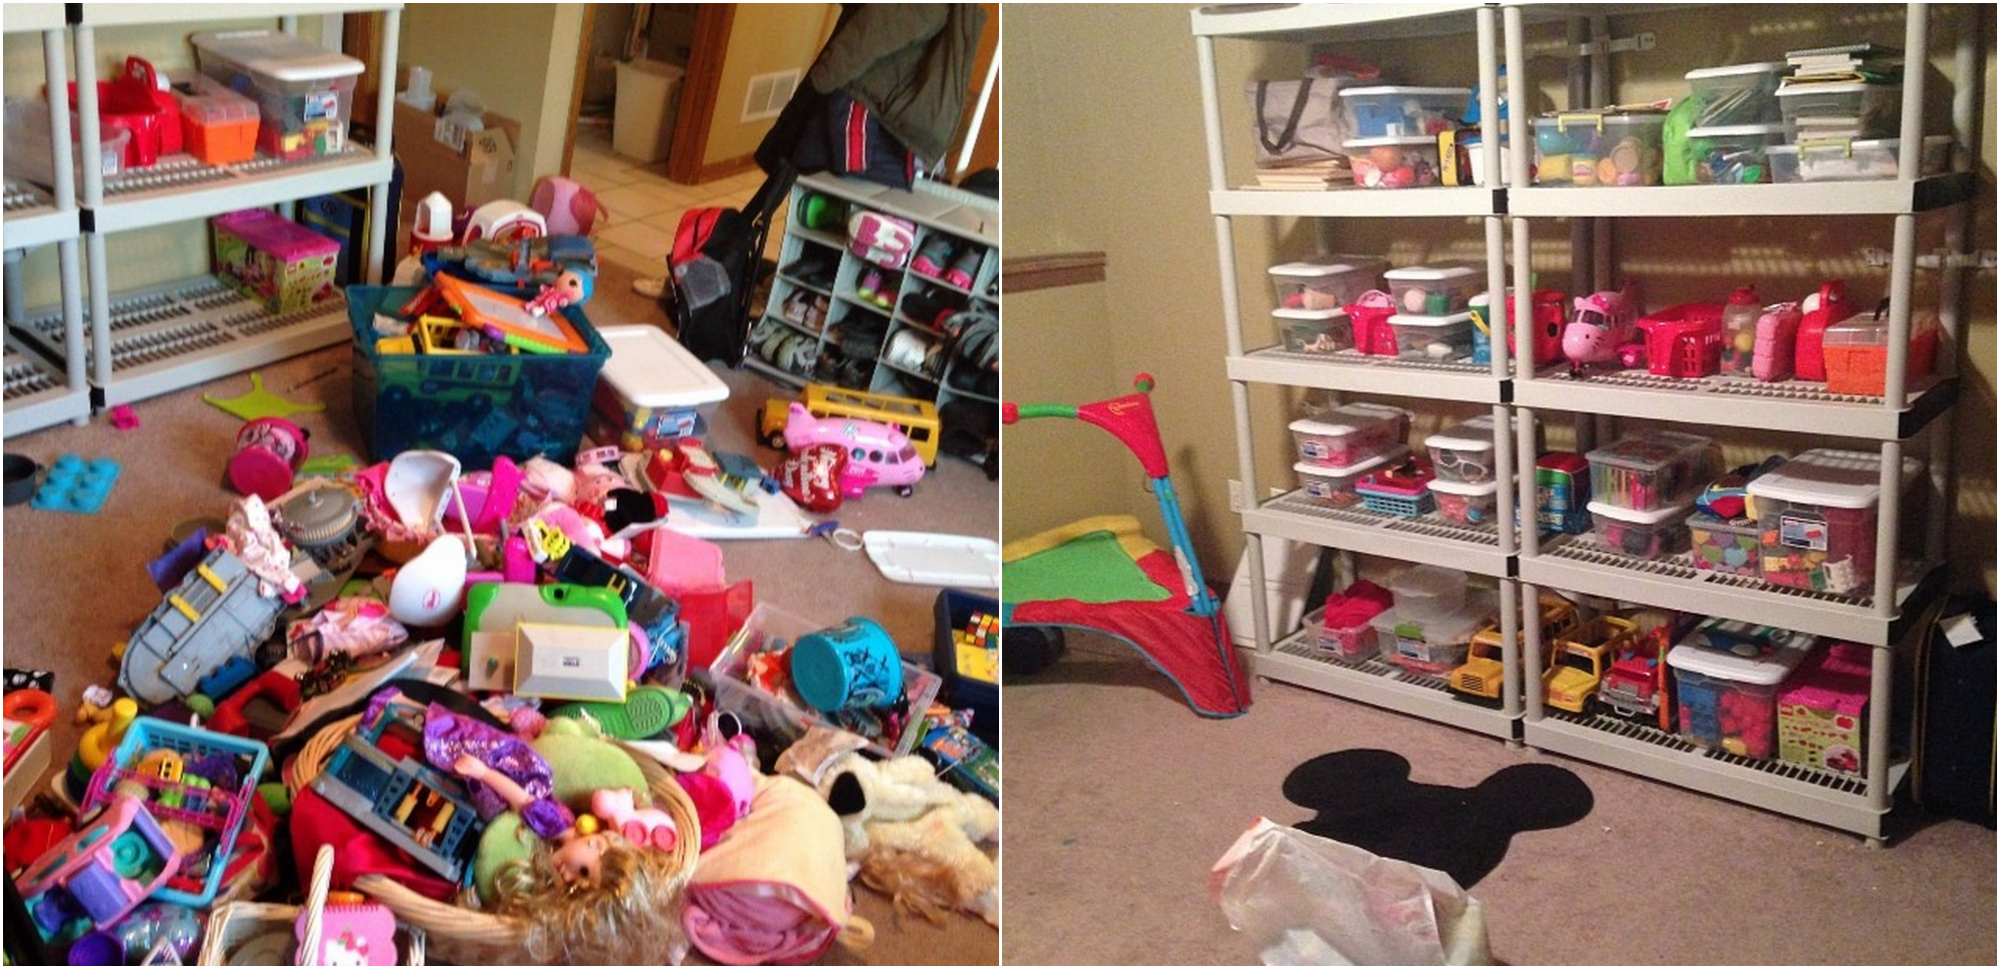 Decluttering Tips to Getting Your House Ready for the Holidays